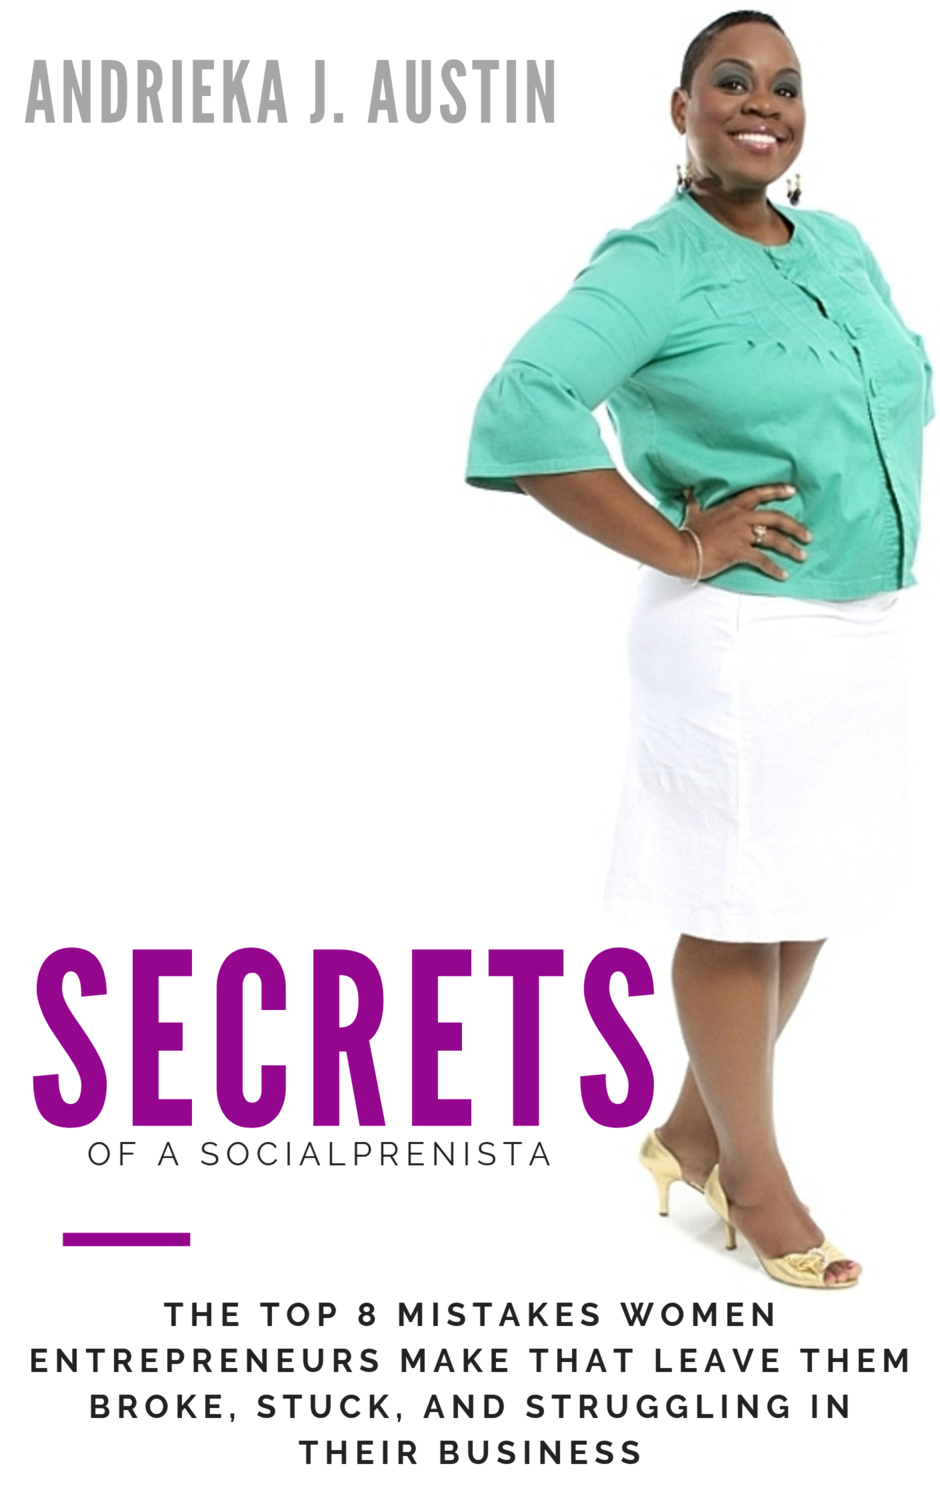 Secrets of A Socialprenista [E-BOOK]